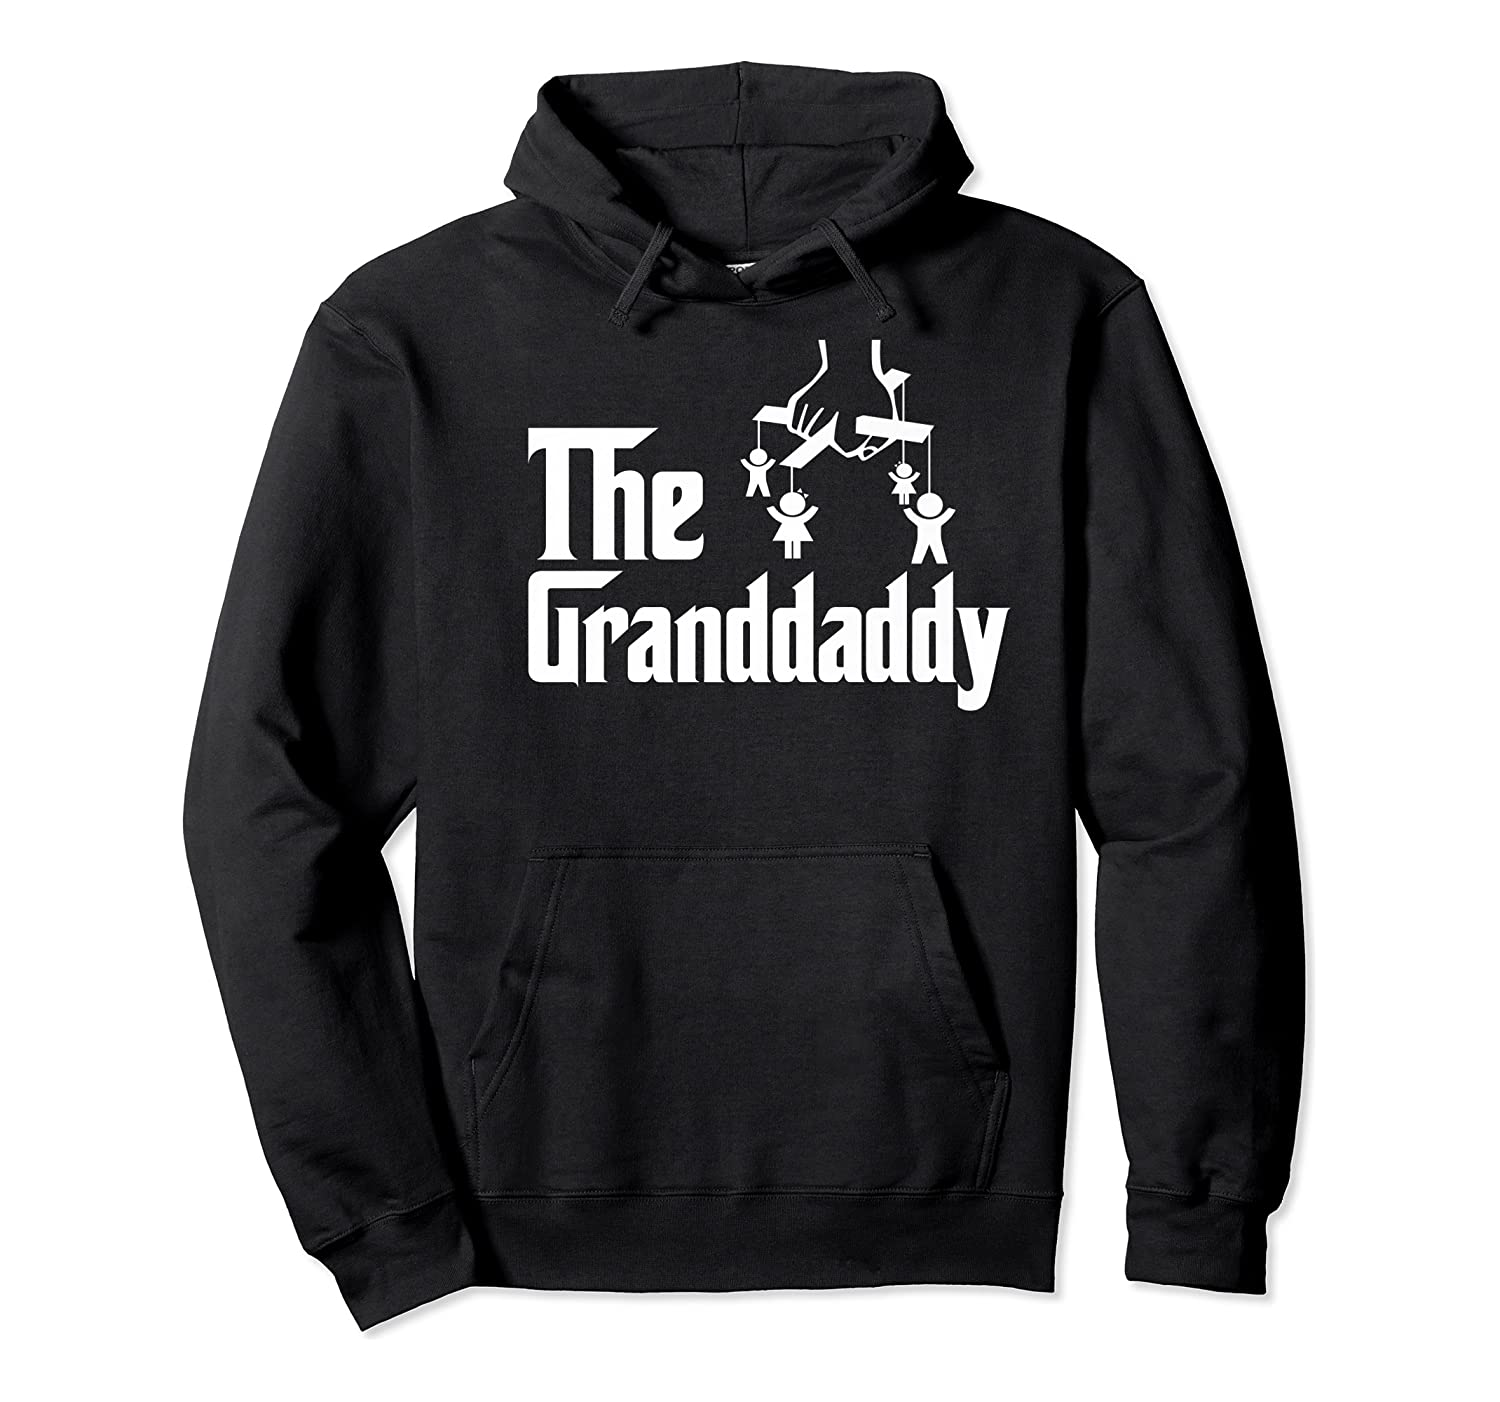 The Granddaddy Family Premium T-shirt Unisex Pullover Hoodie